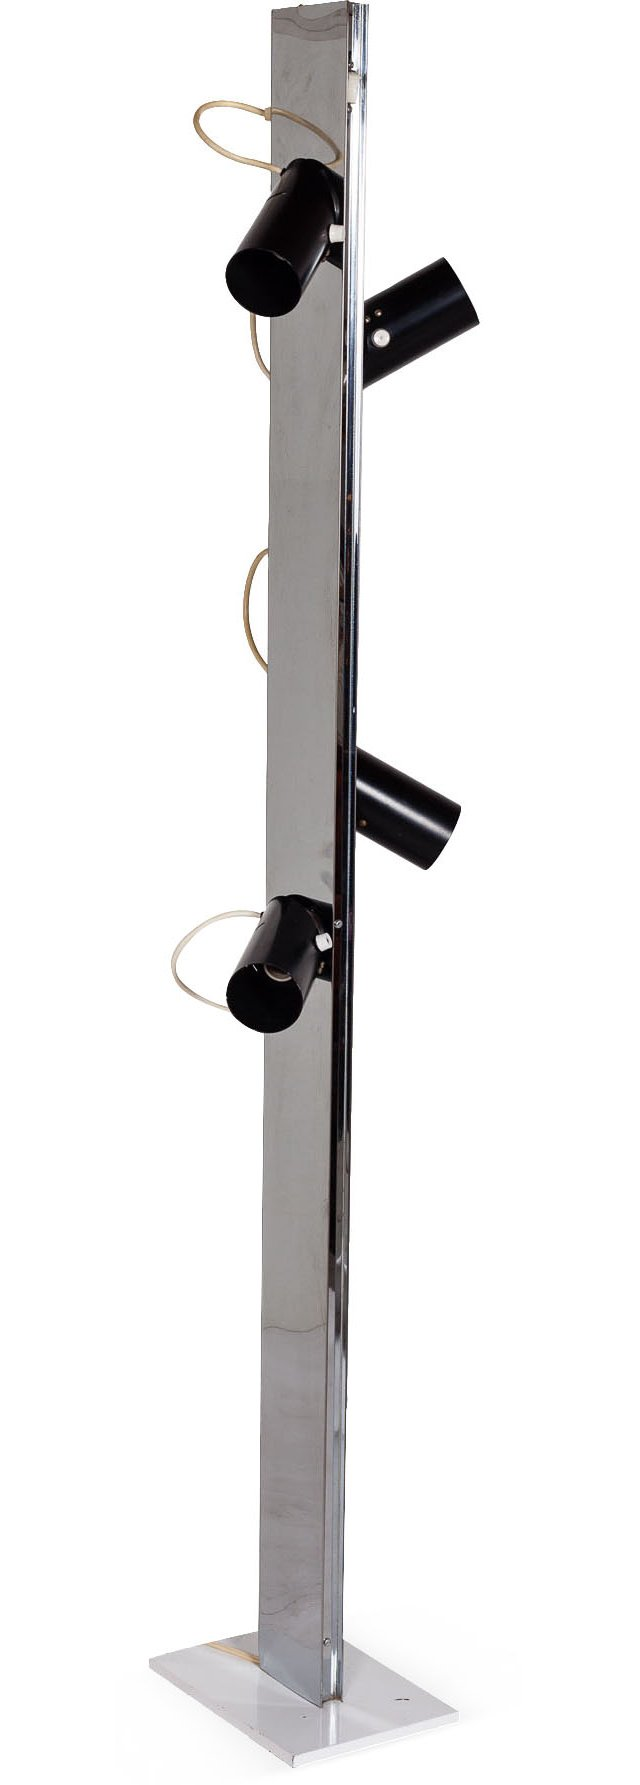 Robert Sonneman Floor Lamp I